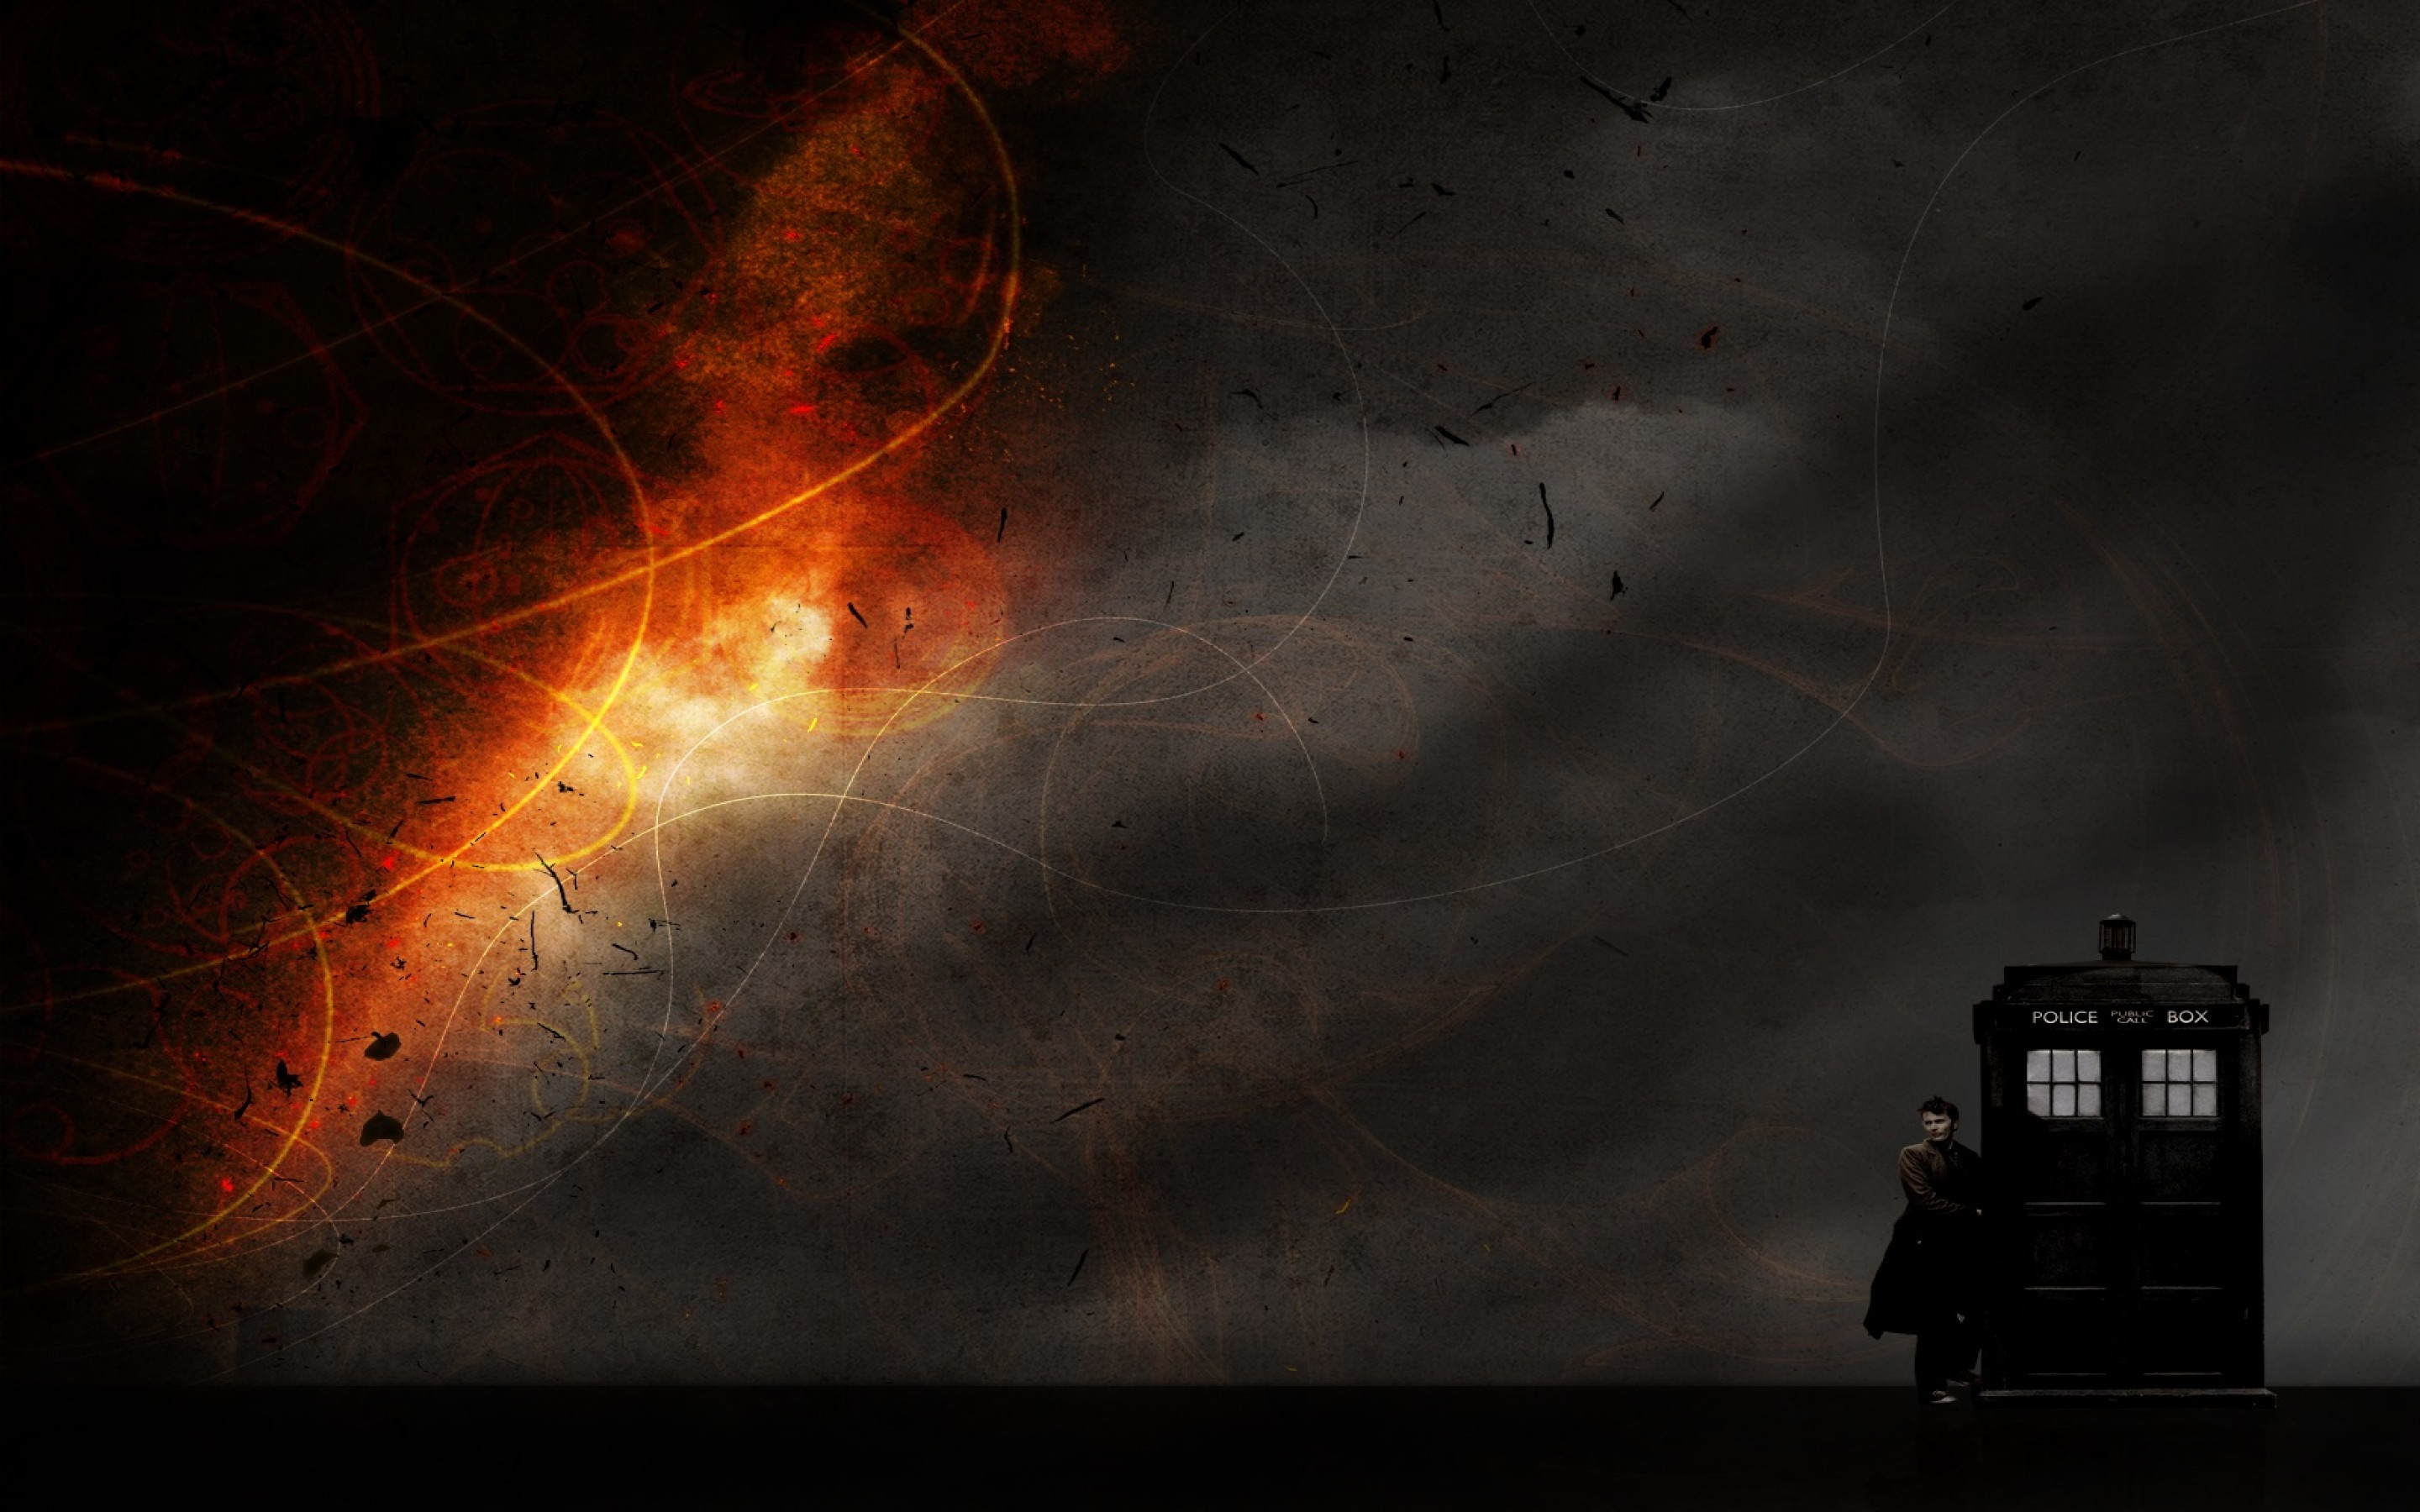 Cool Gallery of Doctor Who Backgrounds: px, Laveta Reiling